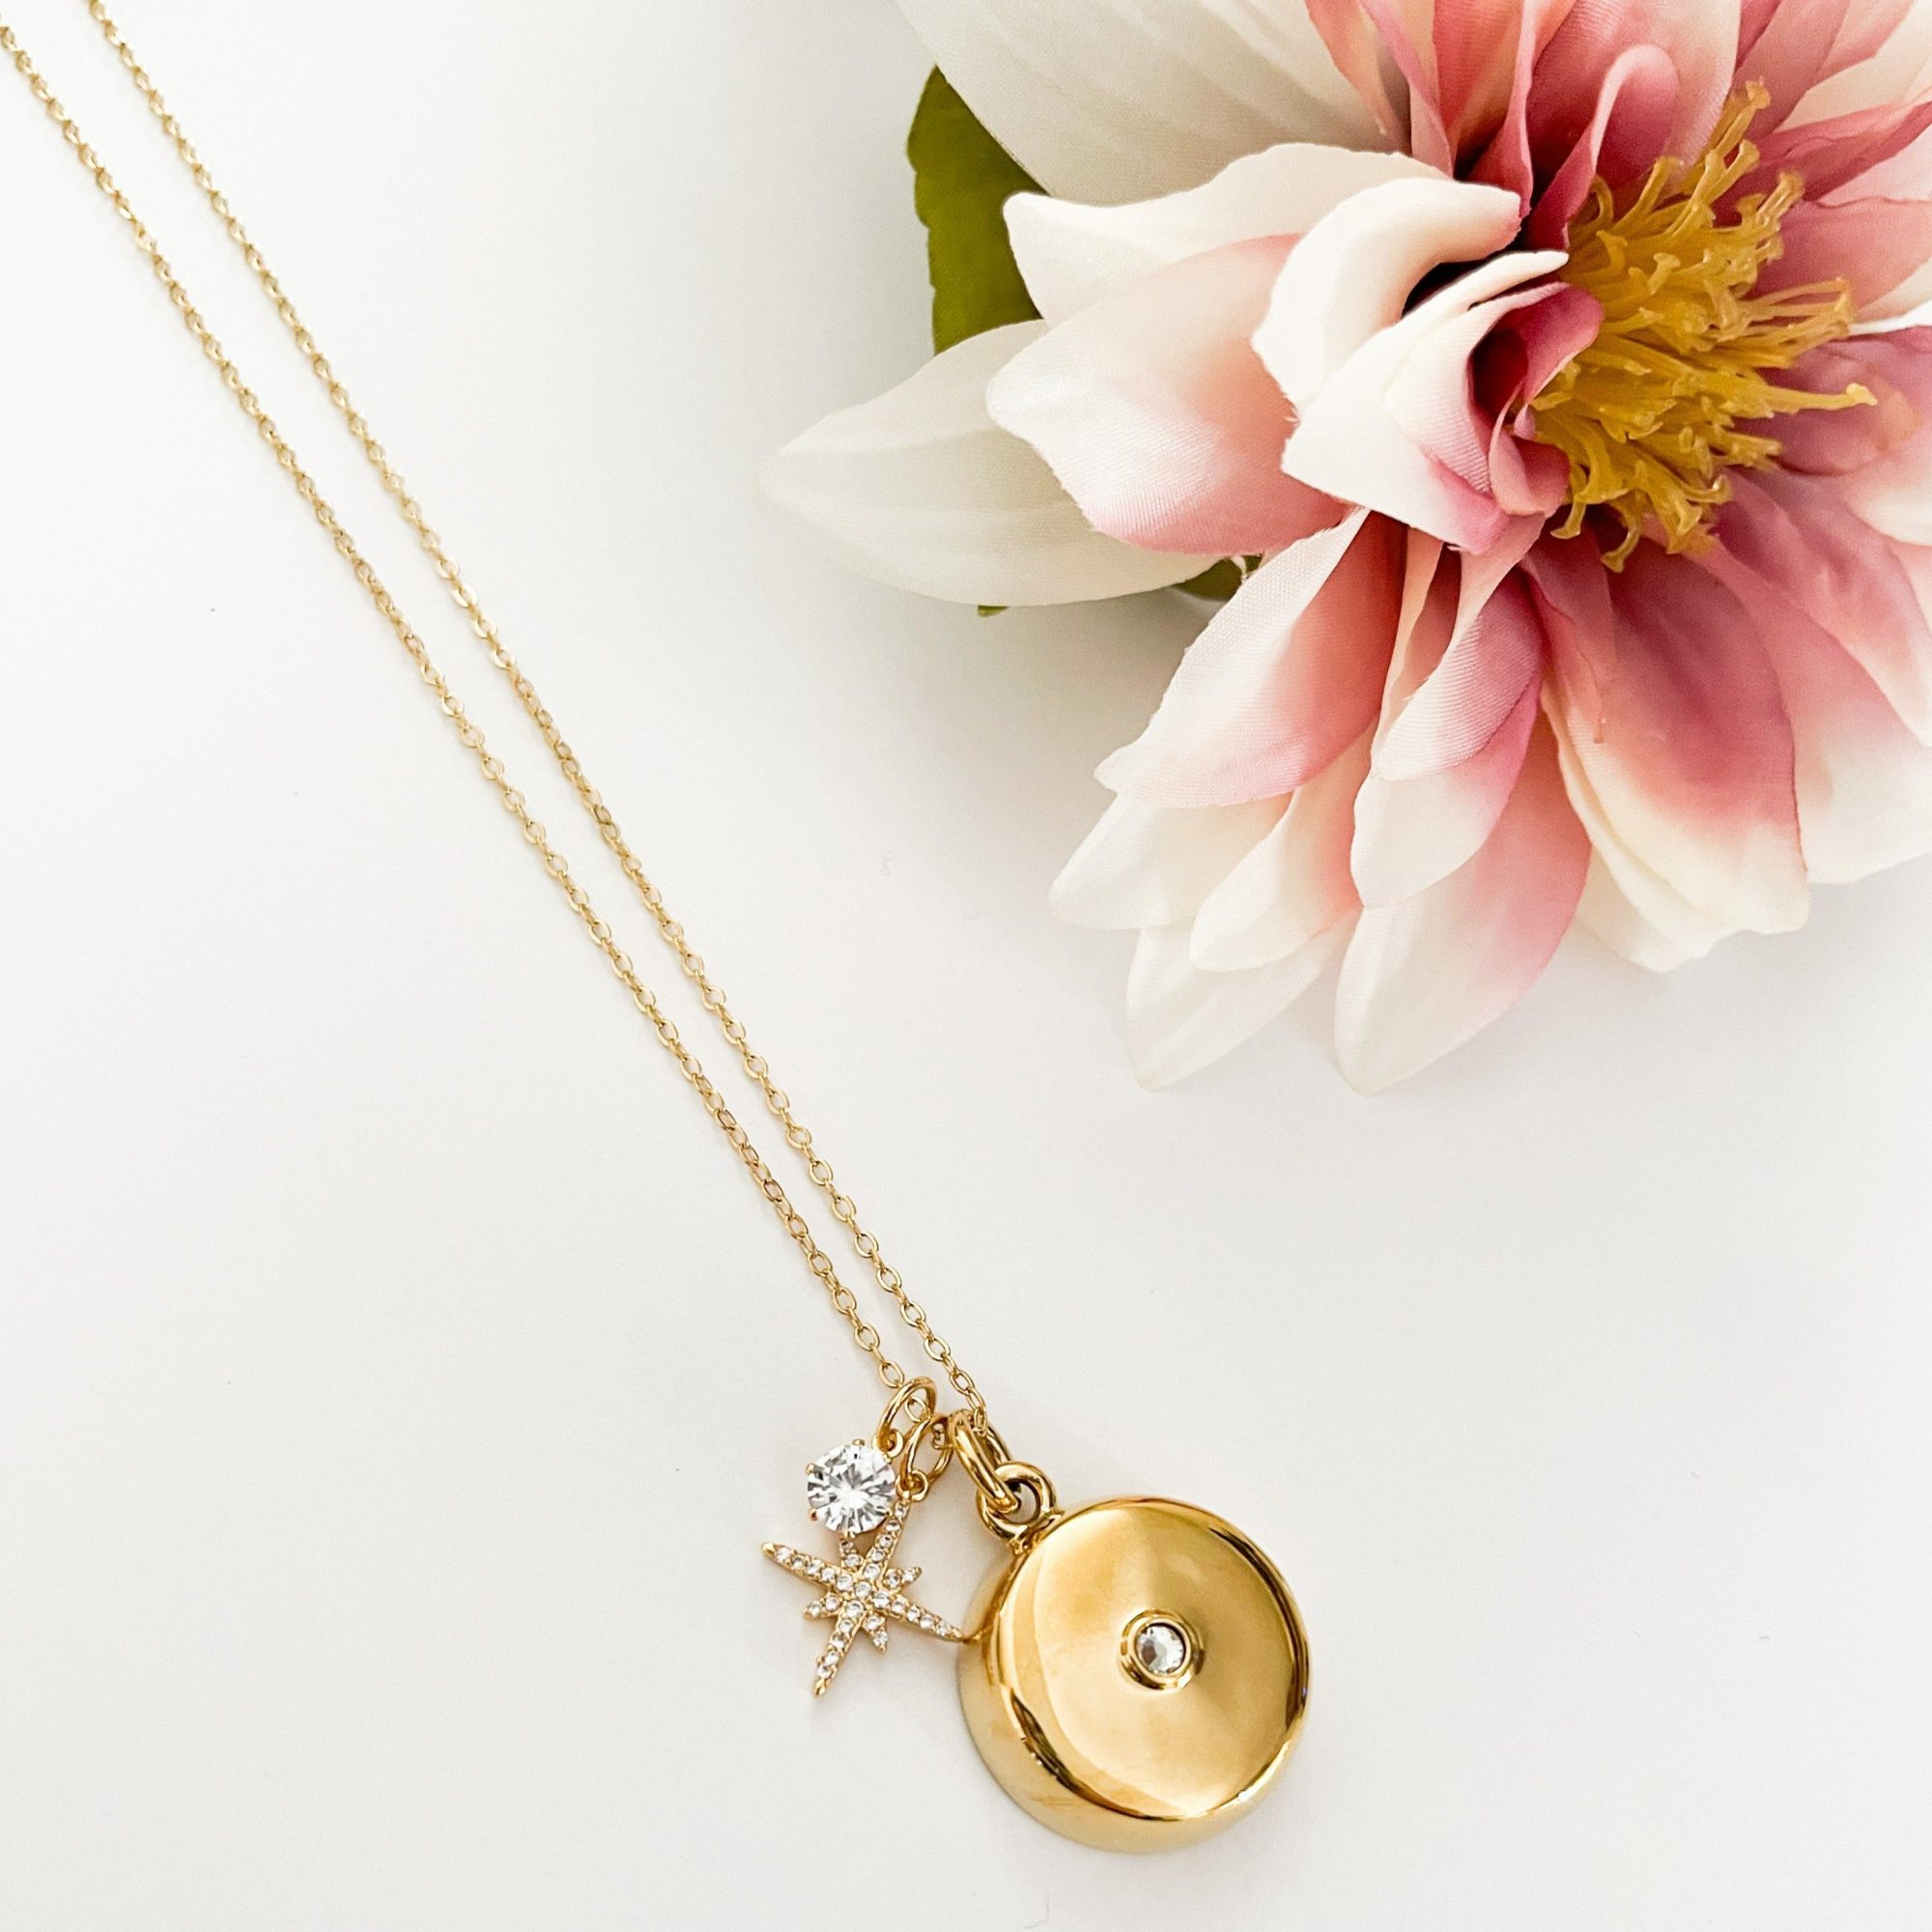 Invisiawear Gold Star Burst Charm Necklace with Crystal Pendant